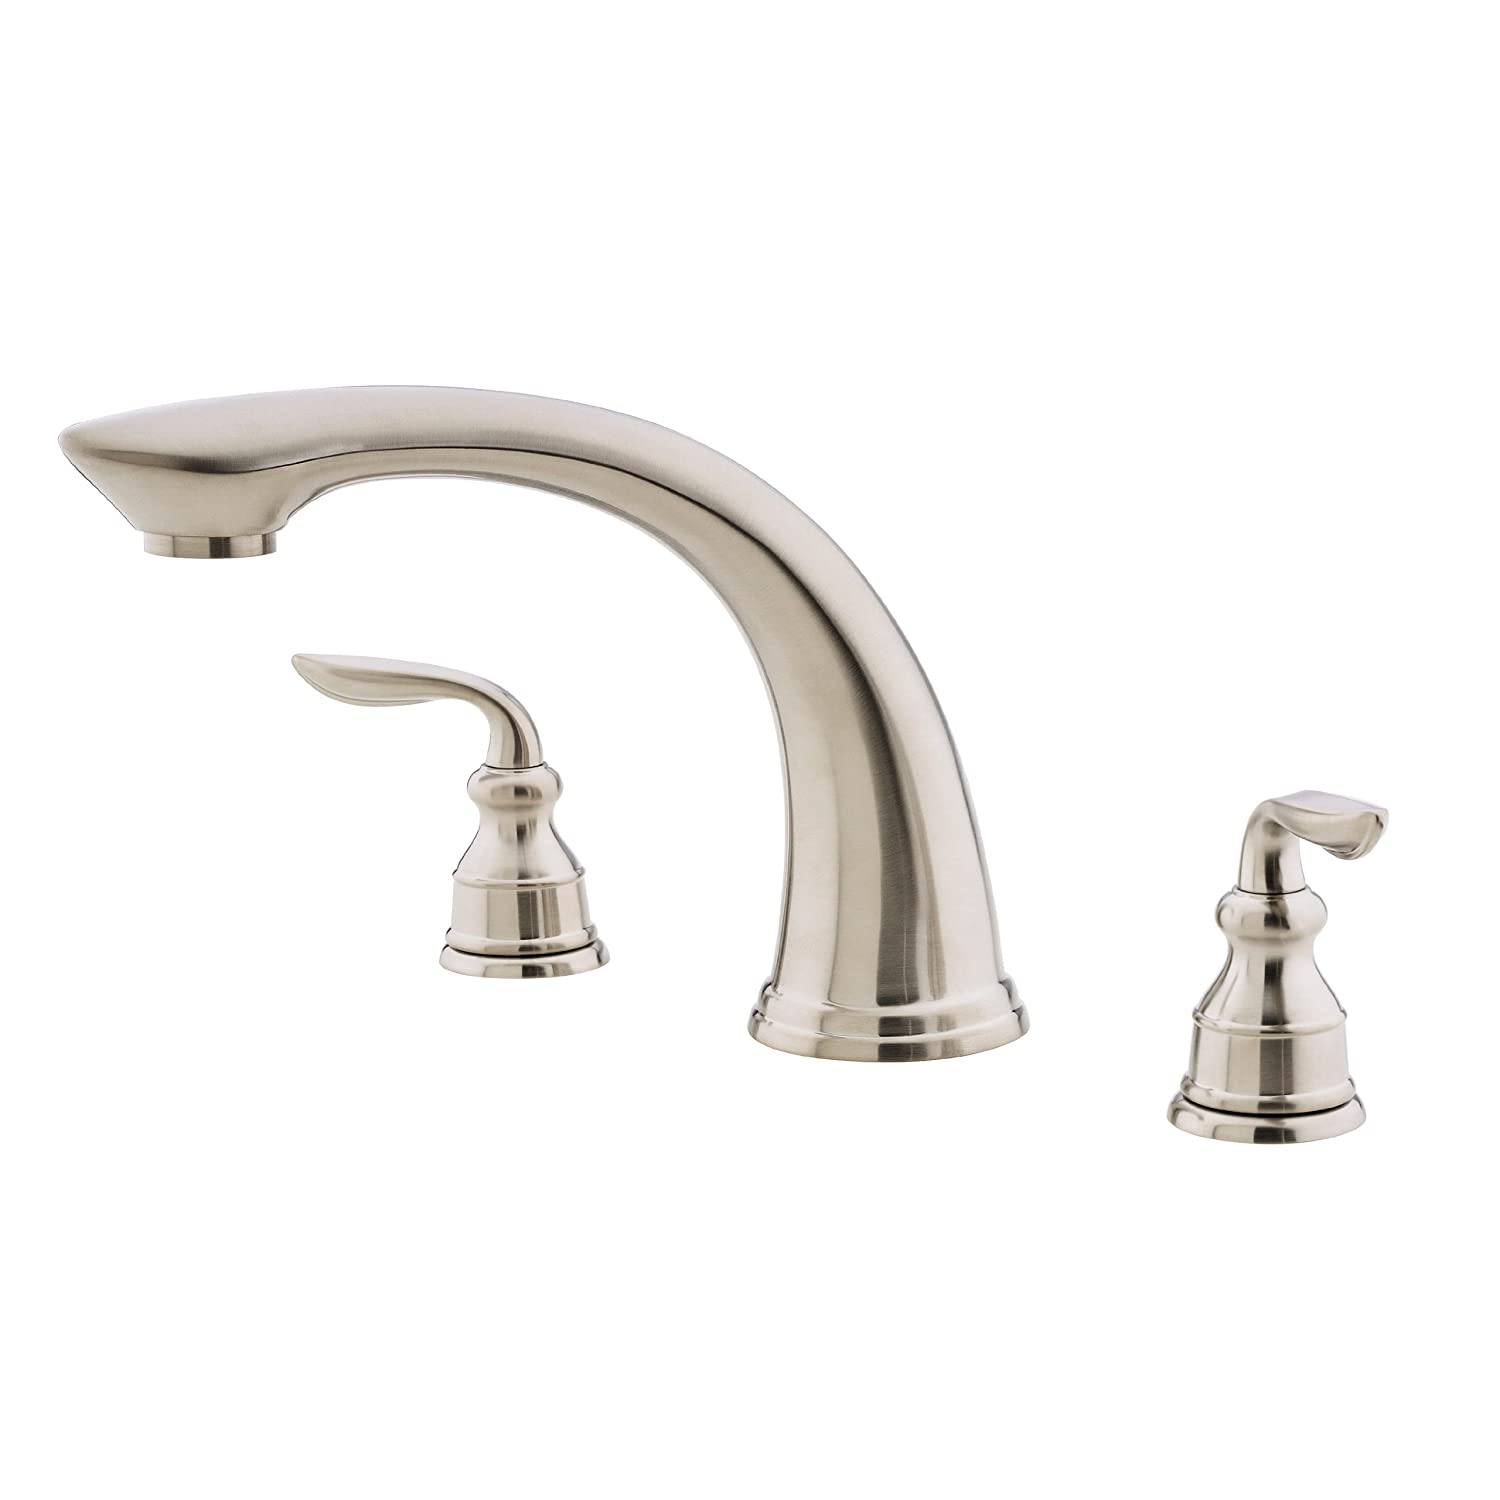 replace roman tub faucet. Pfister Avalon 2 Handle Roman Tub Faucet  Brushed Nickel Two Only Faucets Amazon com